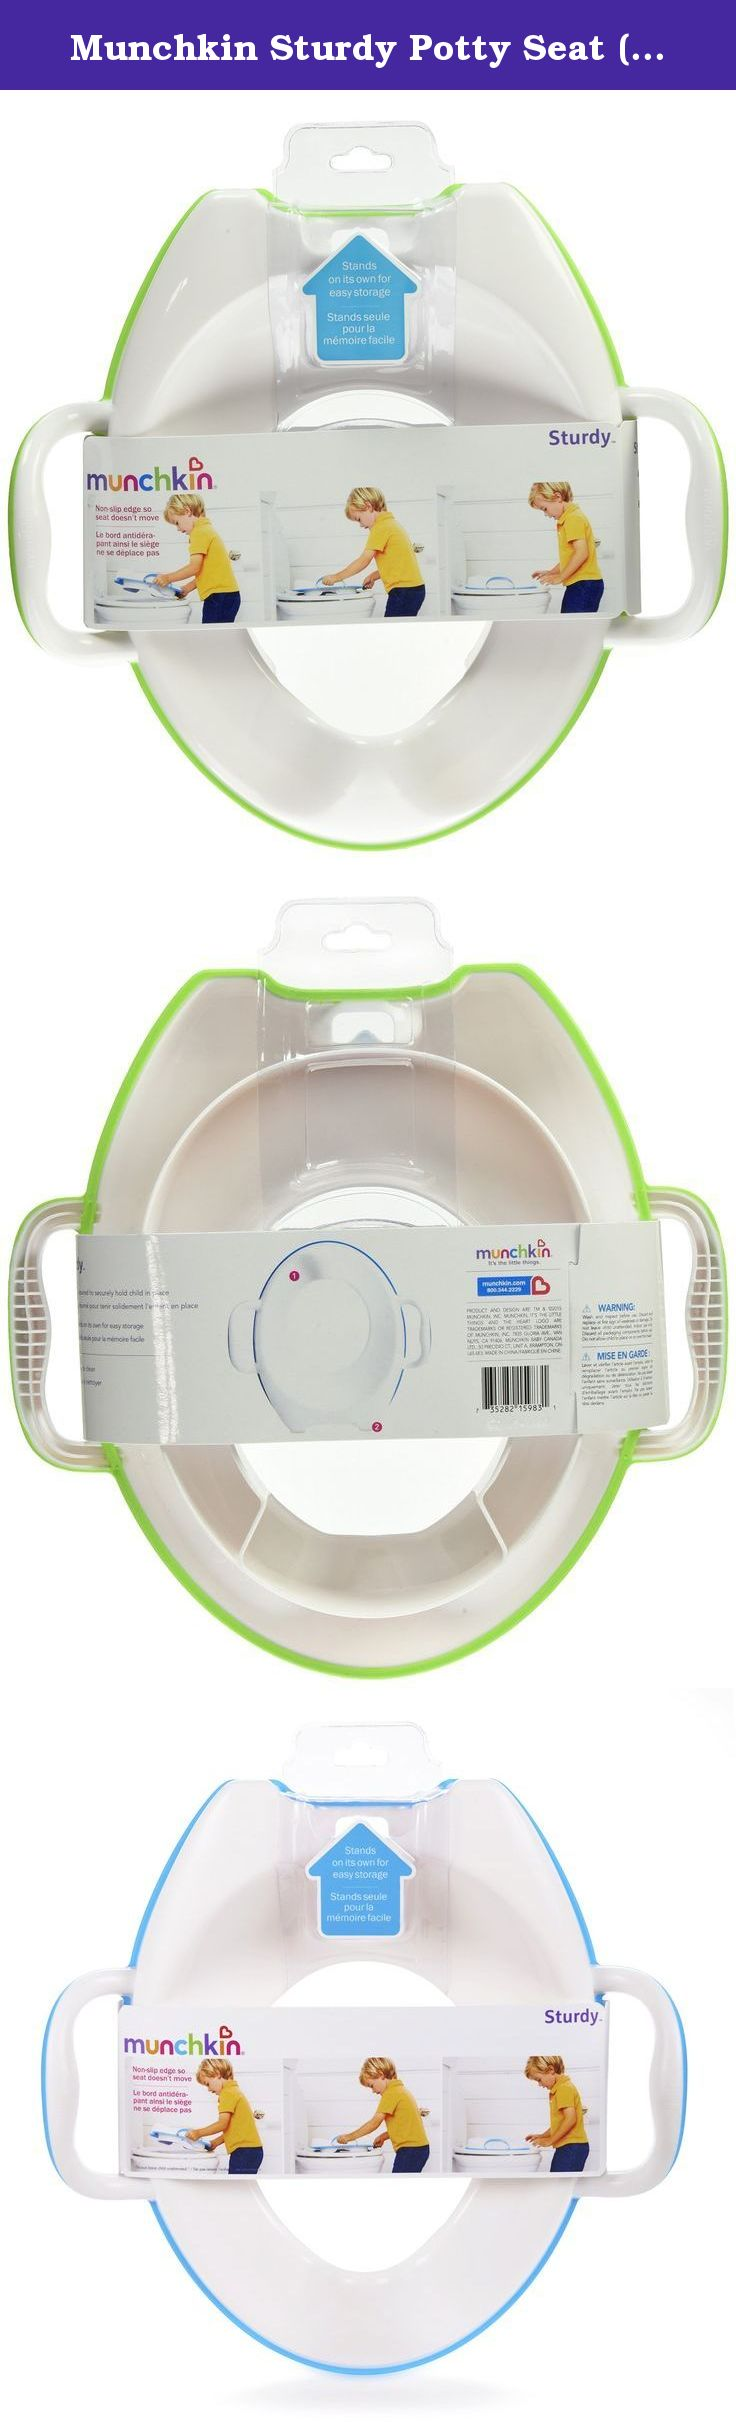 f8c3289e4 Munchkin Sturdy Potty Seat (colors vary). Calm your little one s fears of  falling